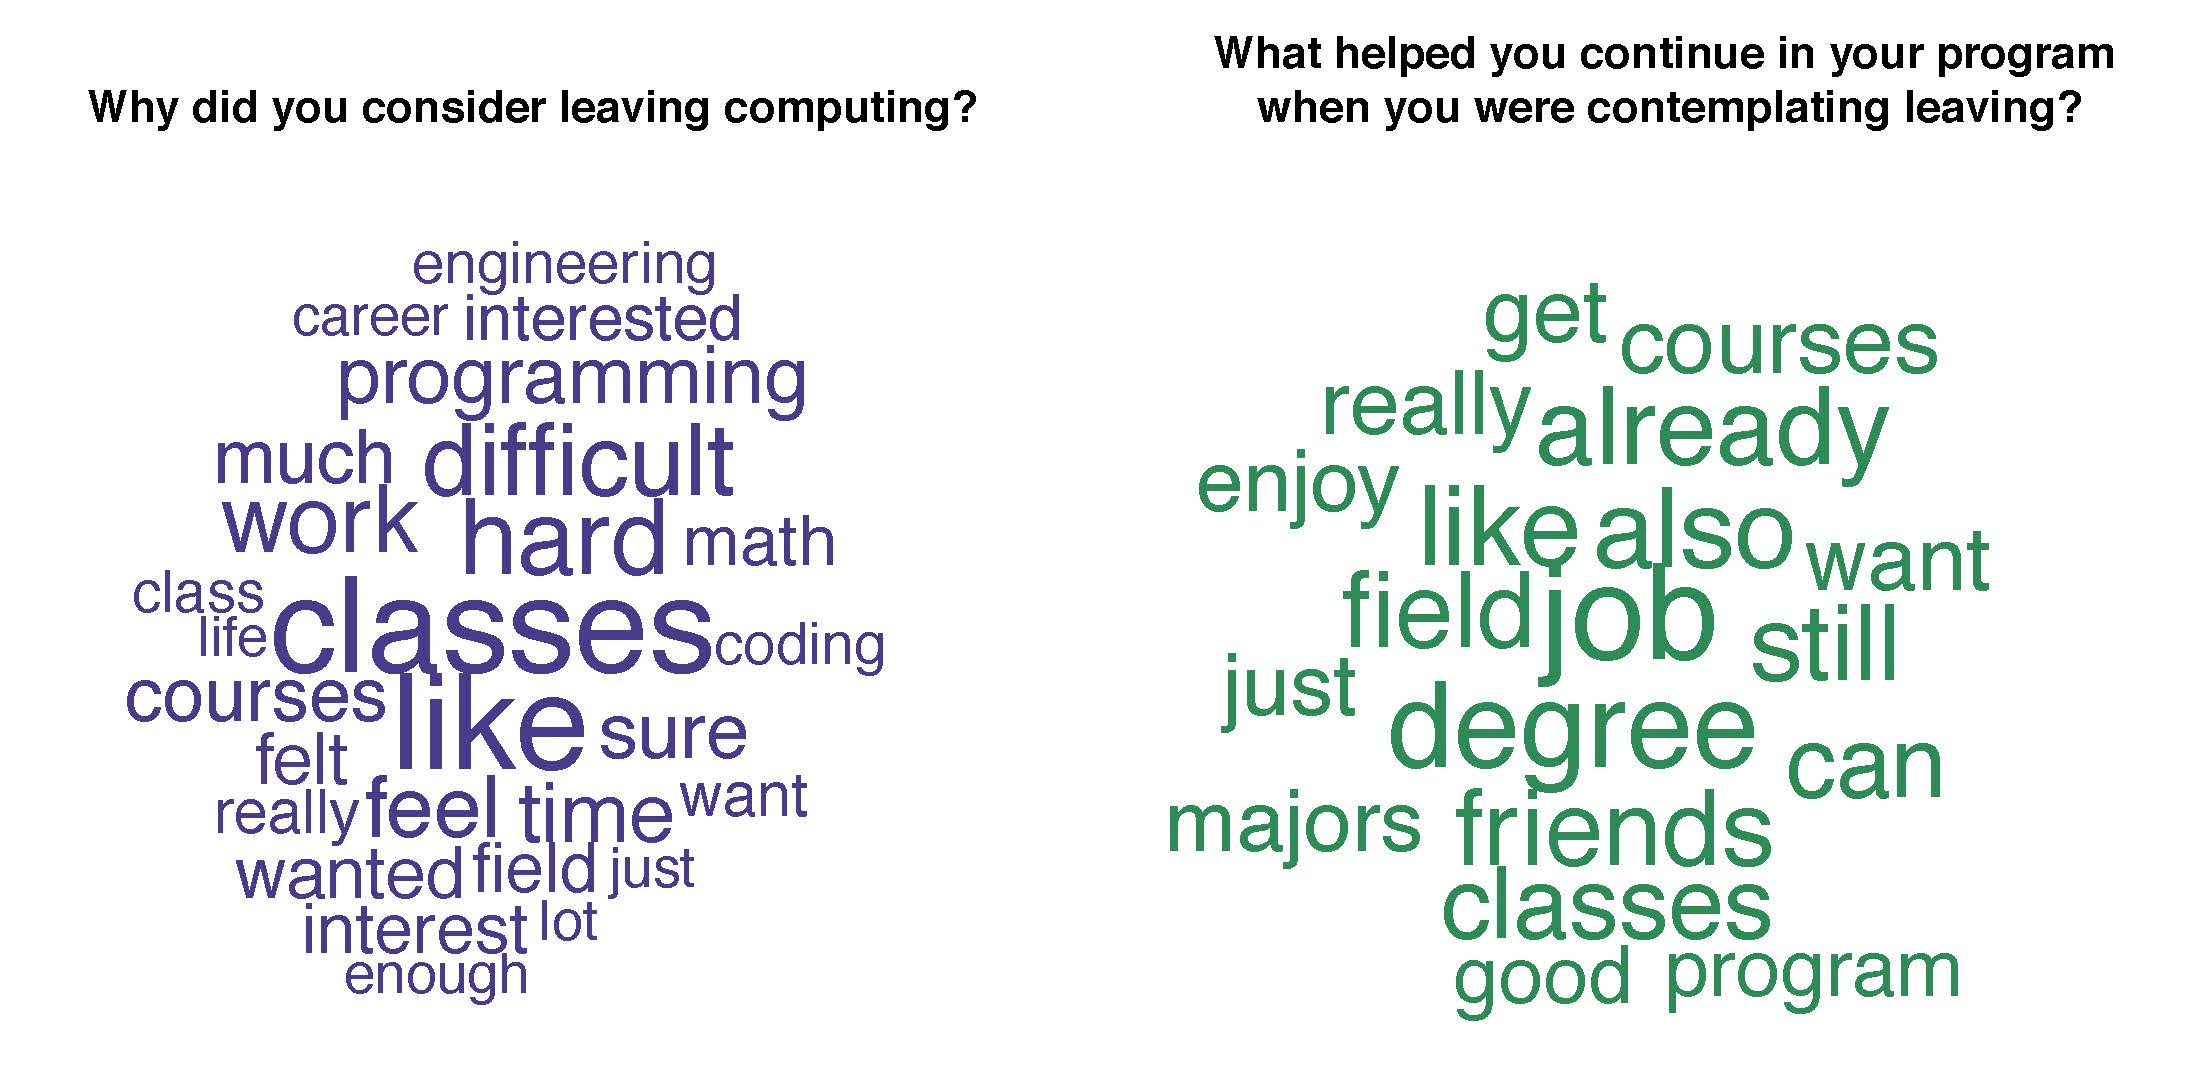 Why students consider leaving computing